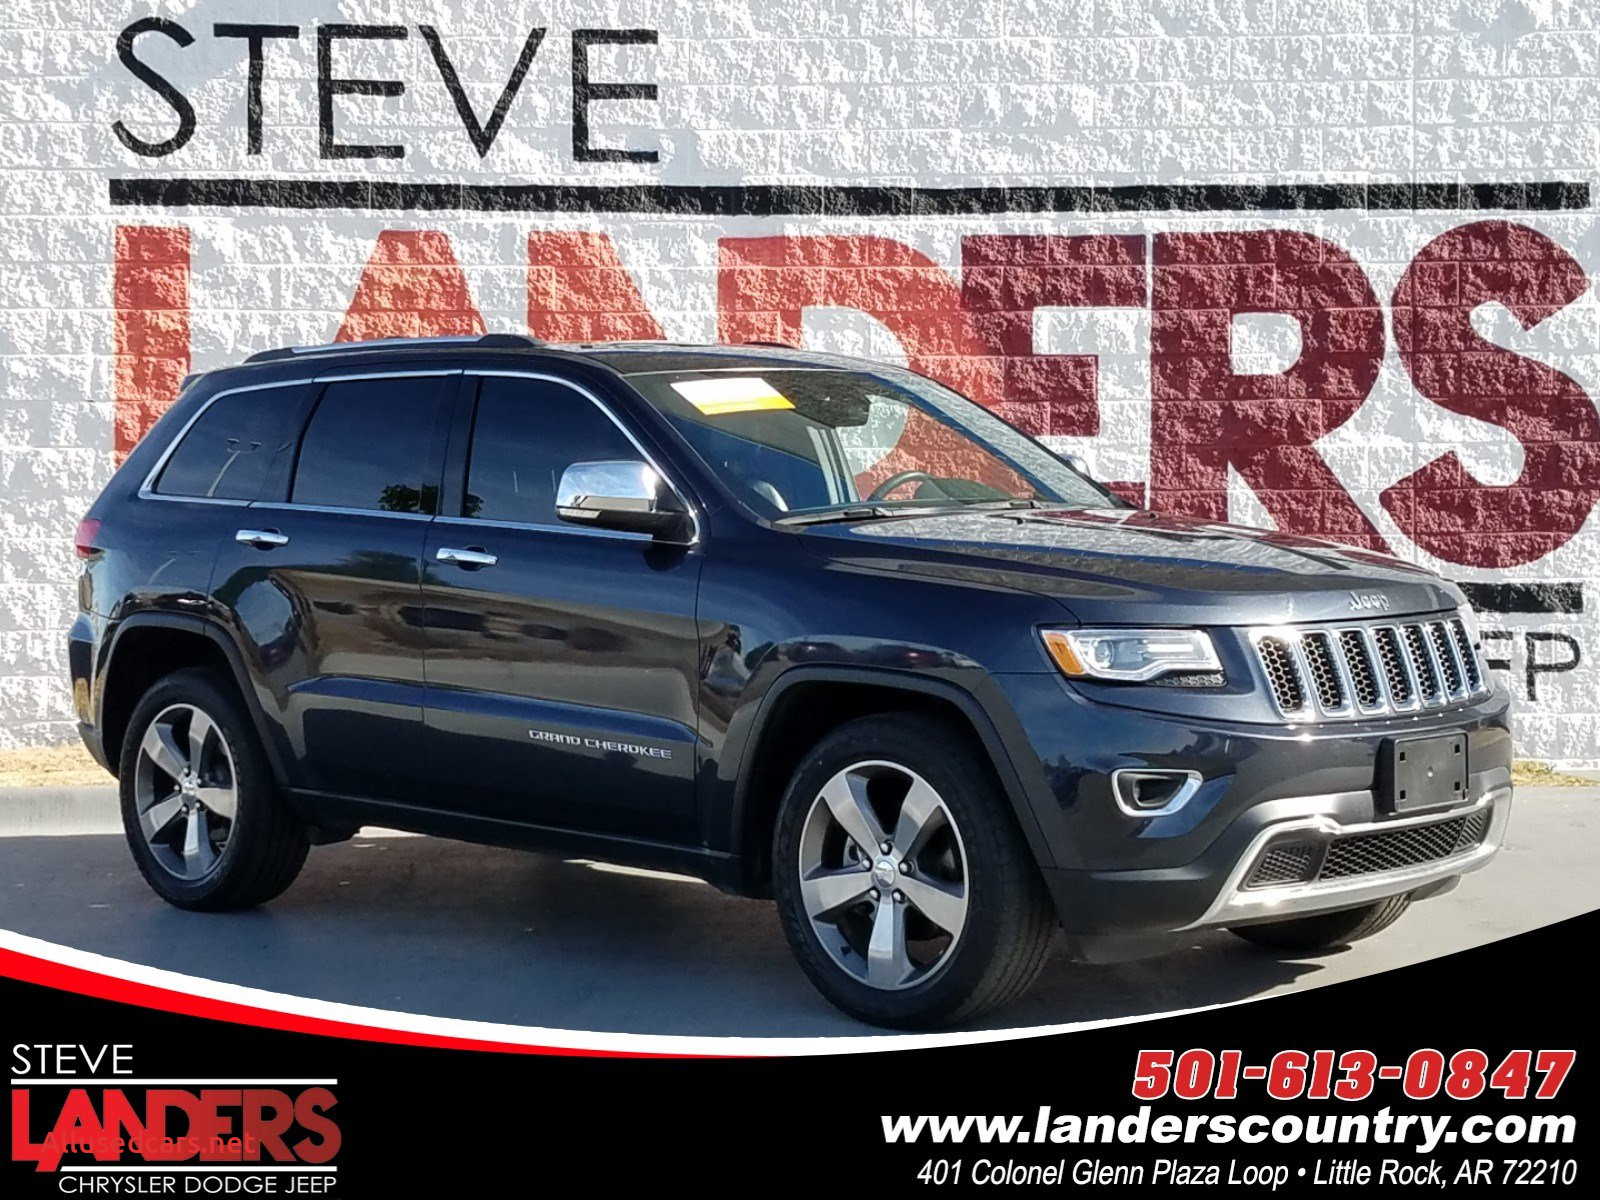 2010 Jeep Grand Cherokee New Pre Owned 2015 Jeep Grand Cherokee Limited with Navigation